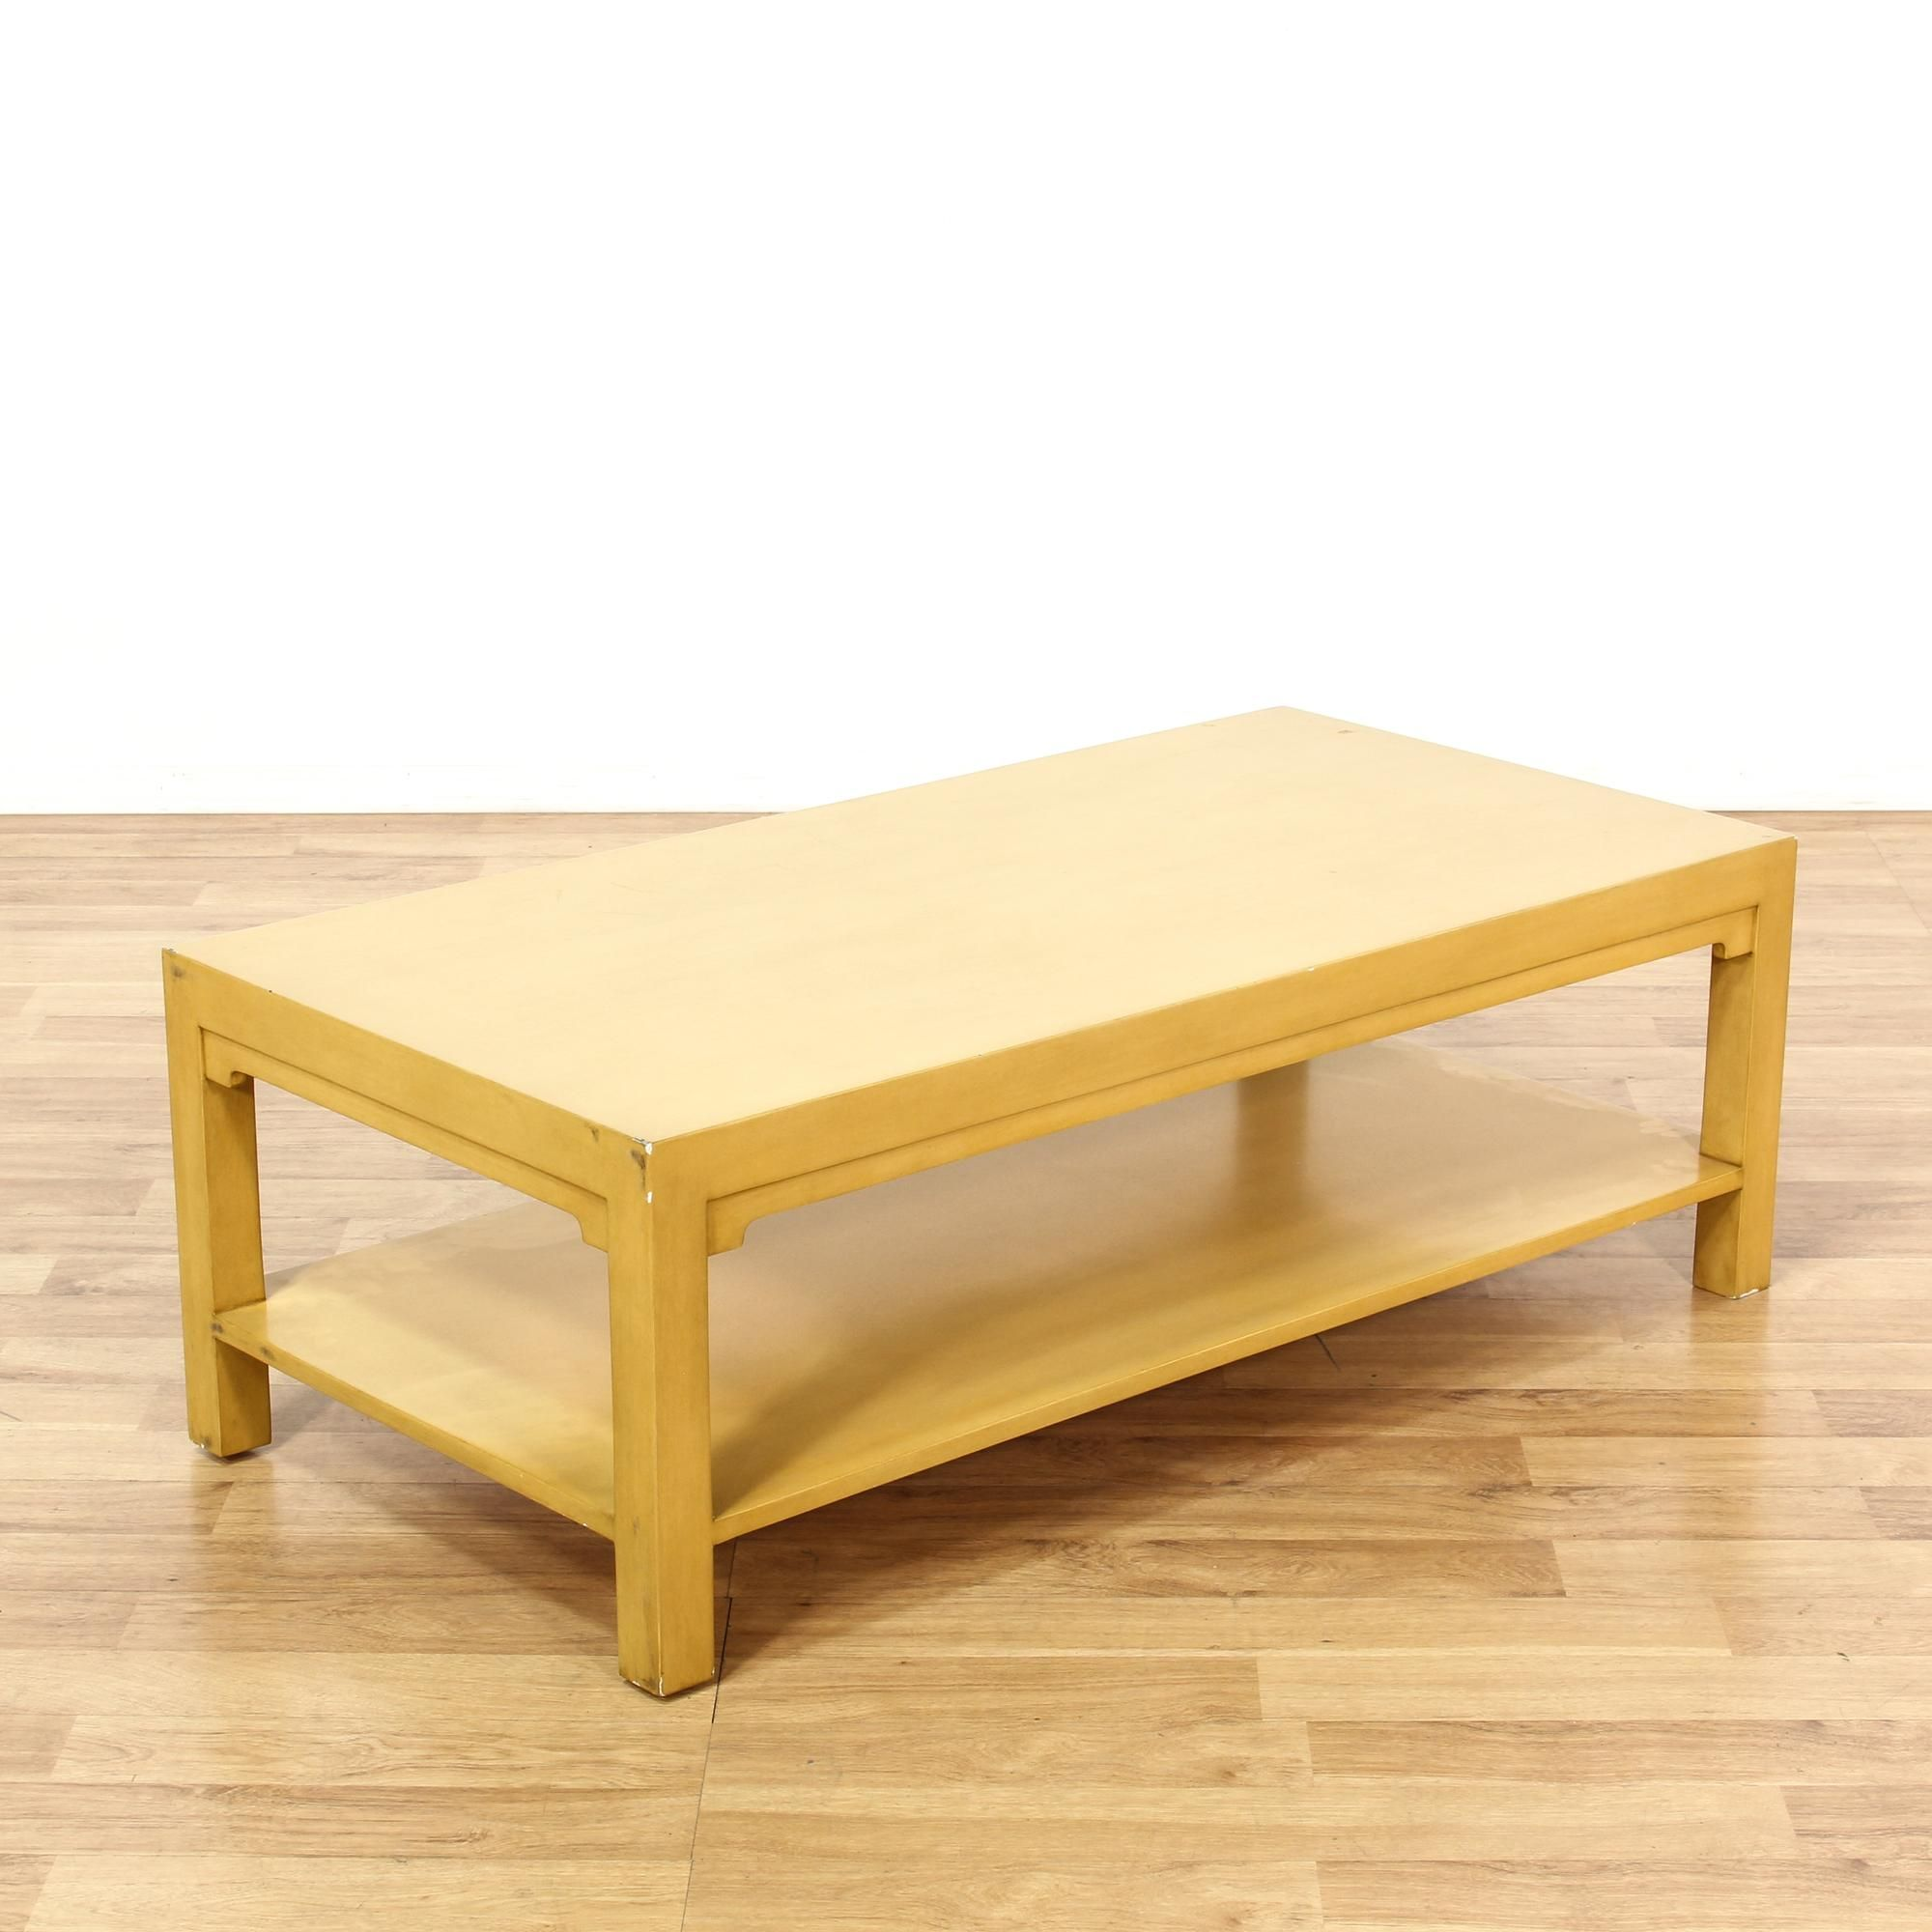 This Contemporary Coffee Table Is Featured In A Solid Wood With Light Blonde Finish